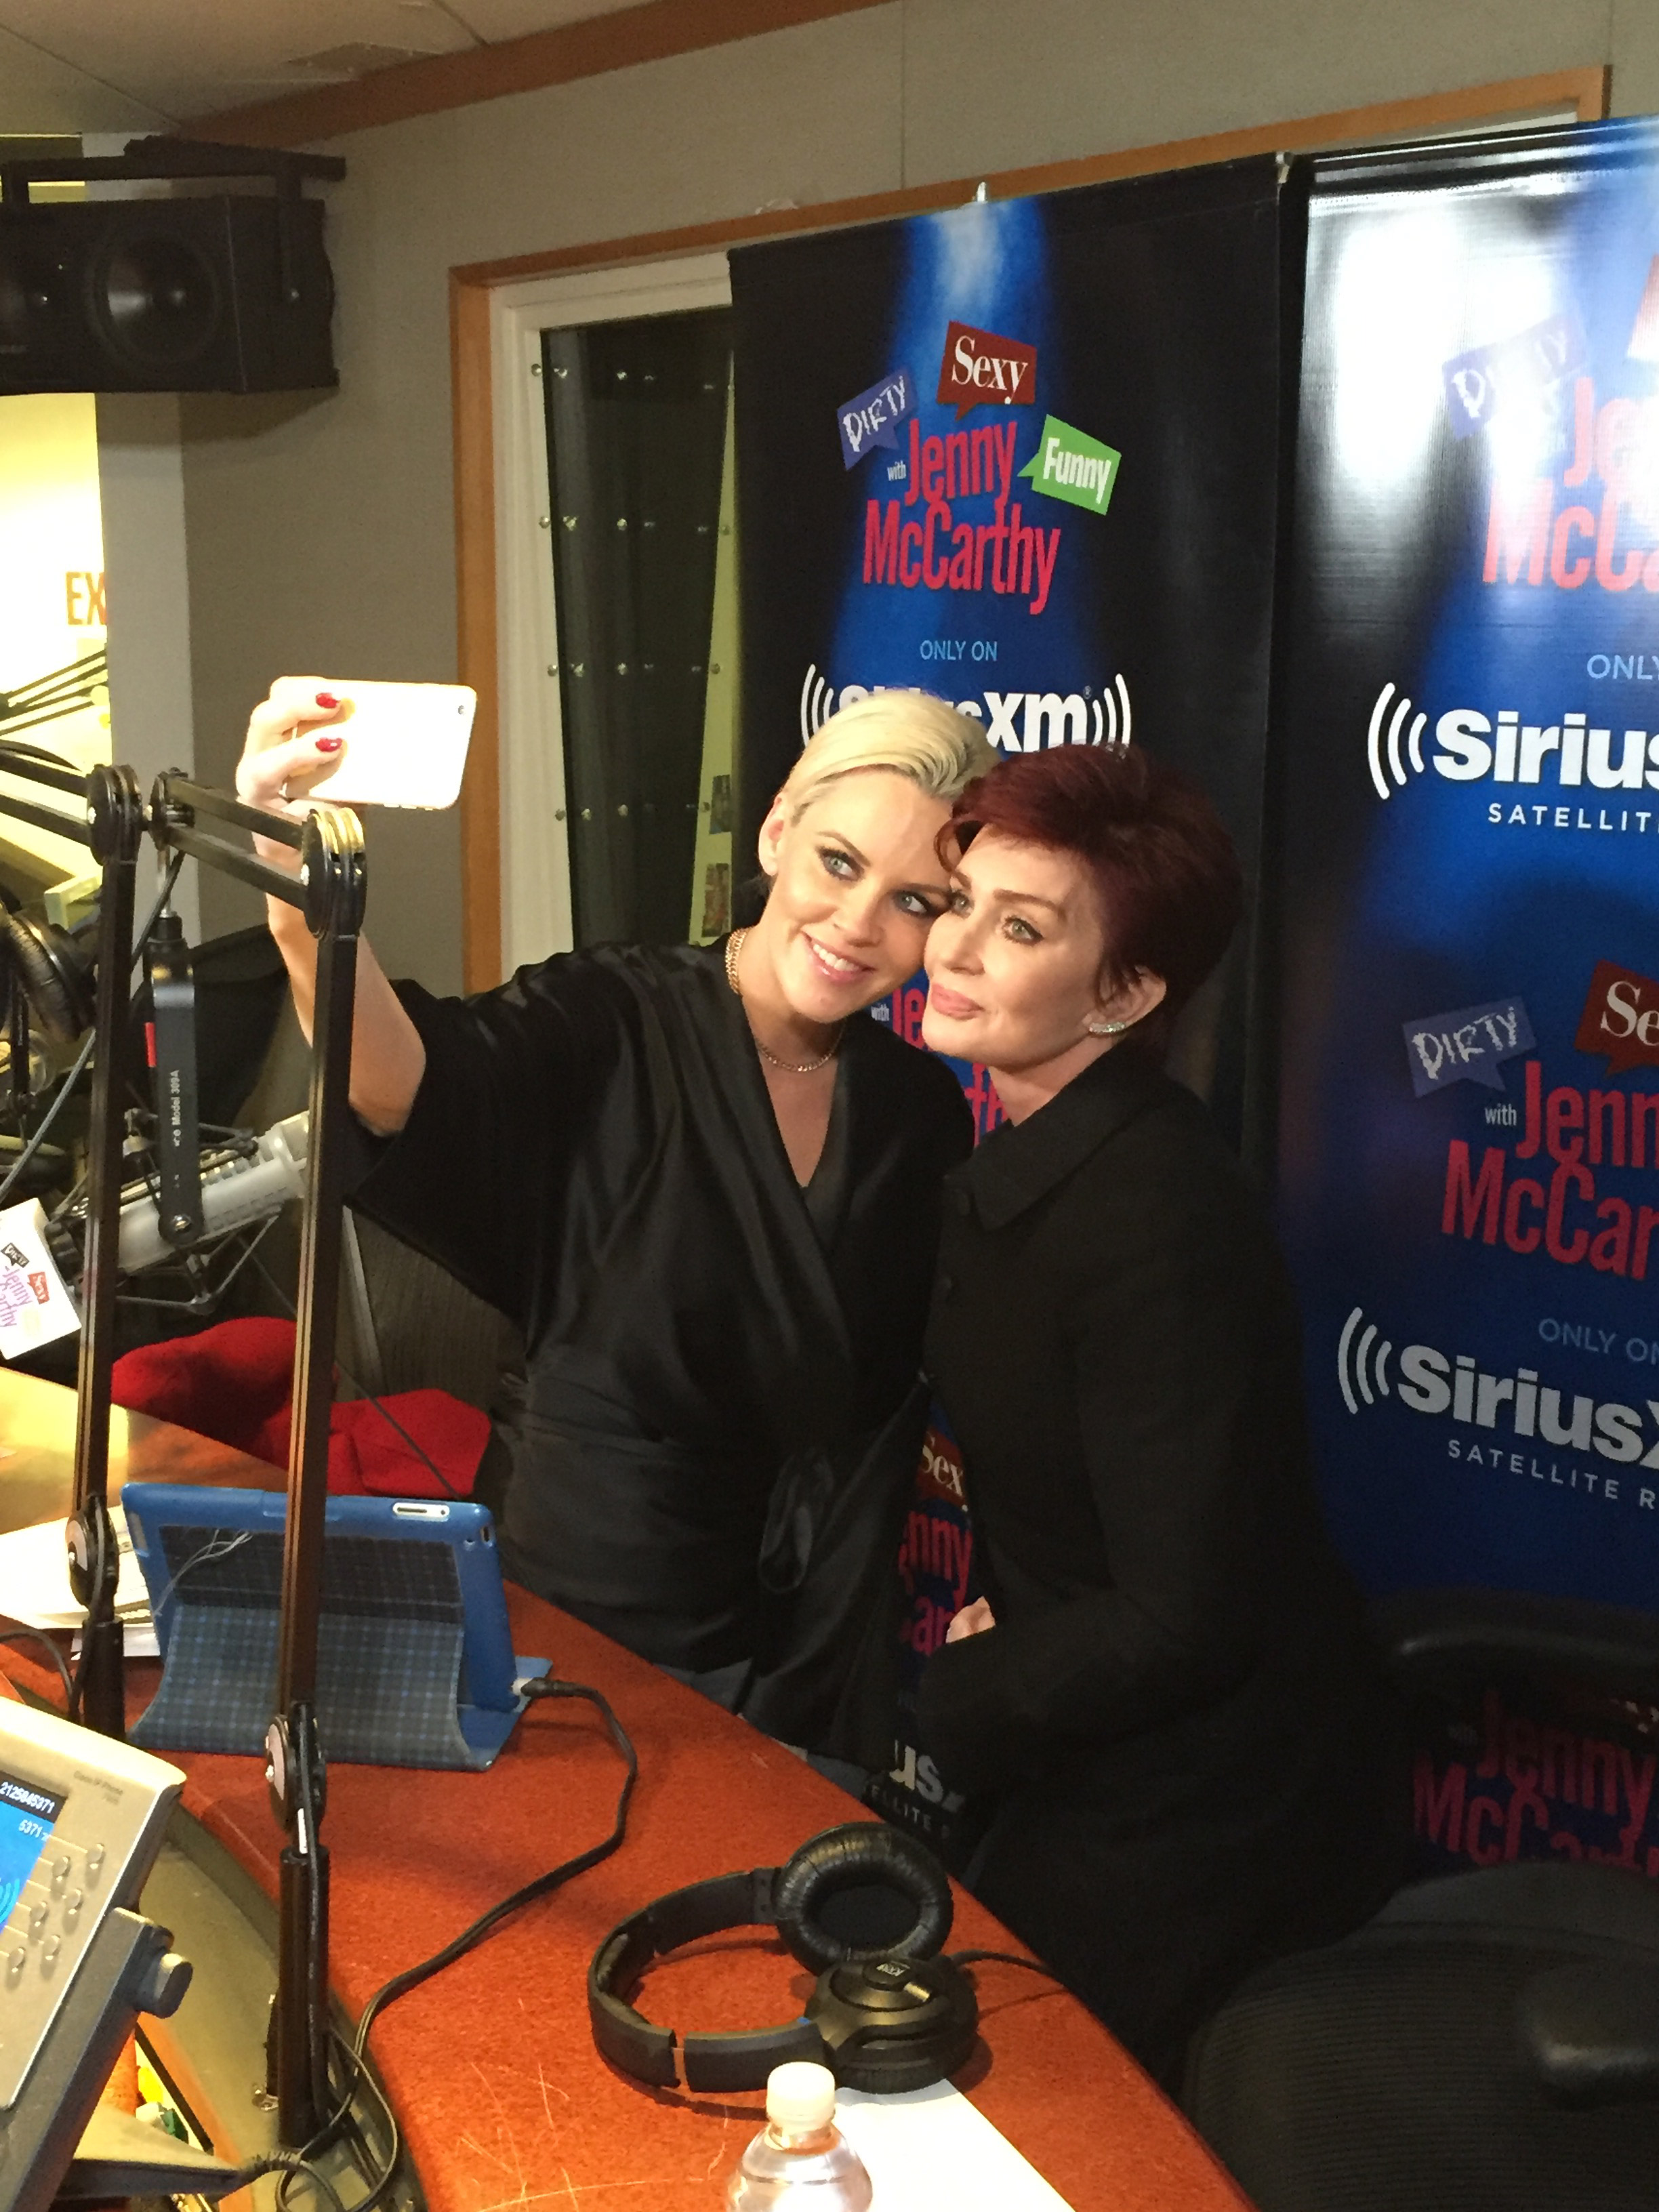 Selfie time with Jenny McCarthy